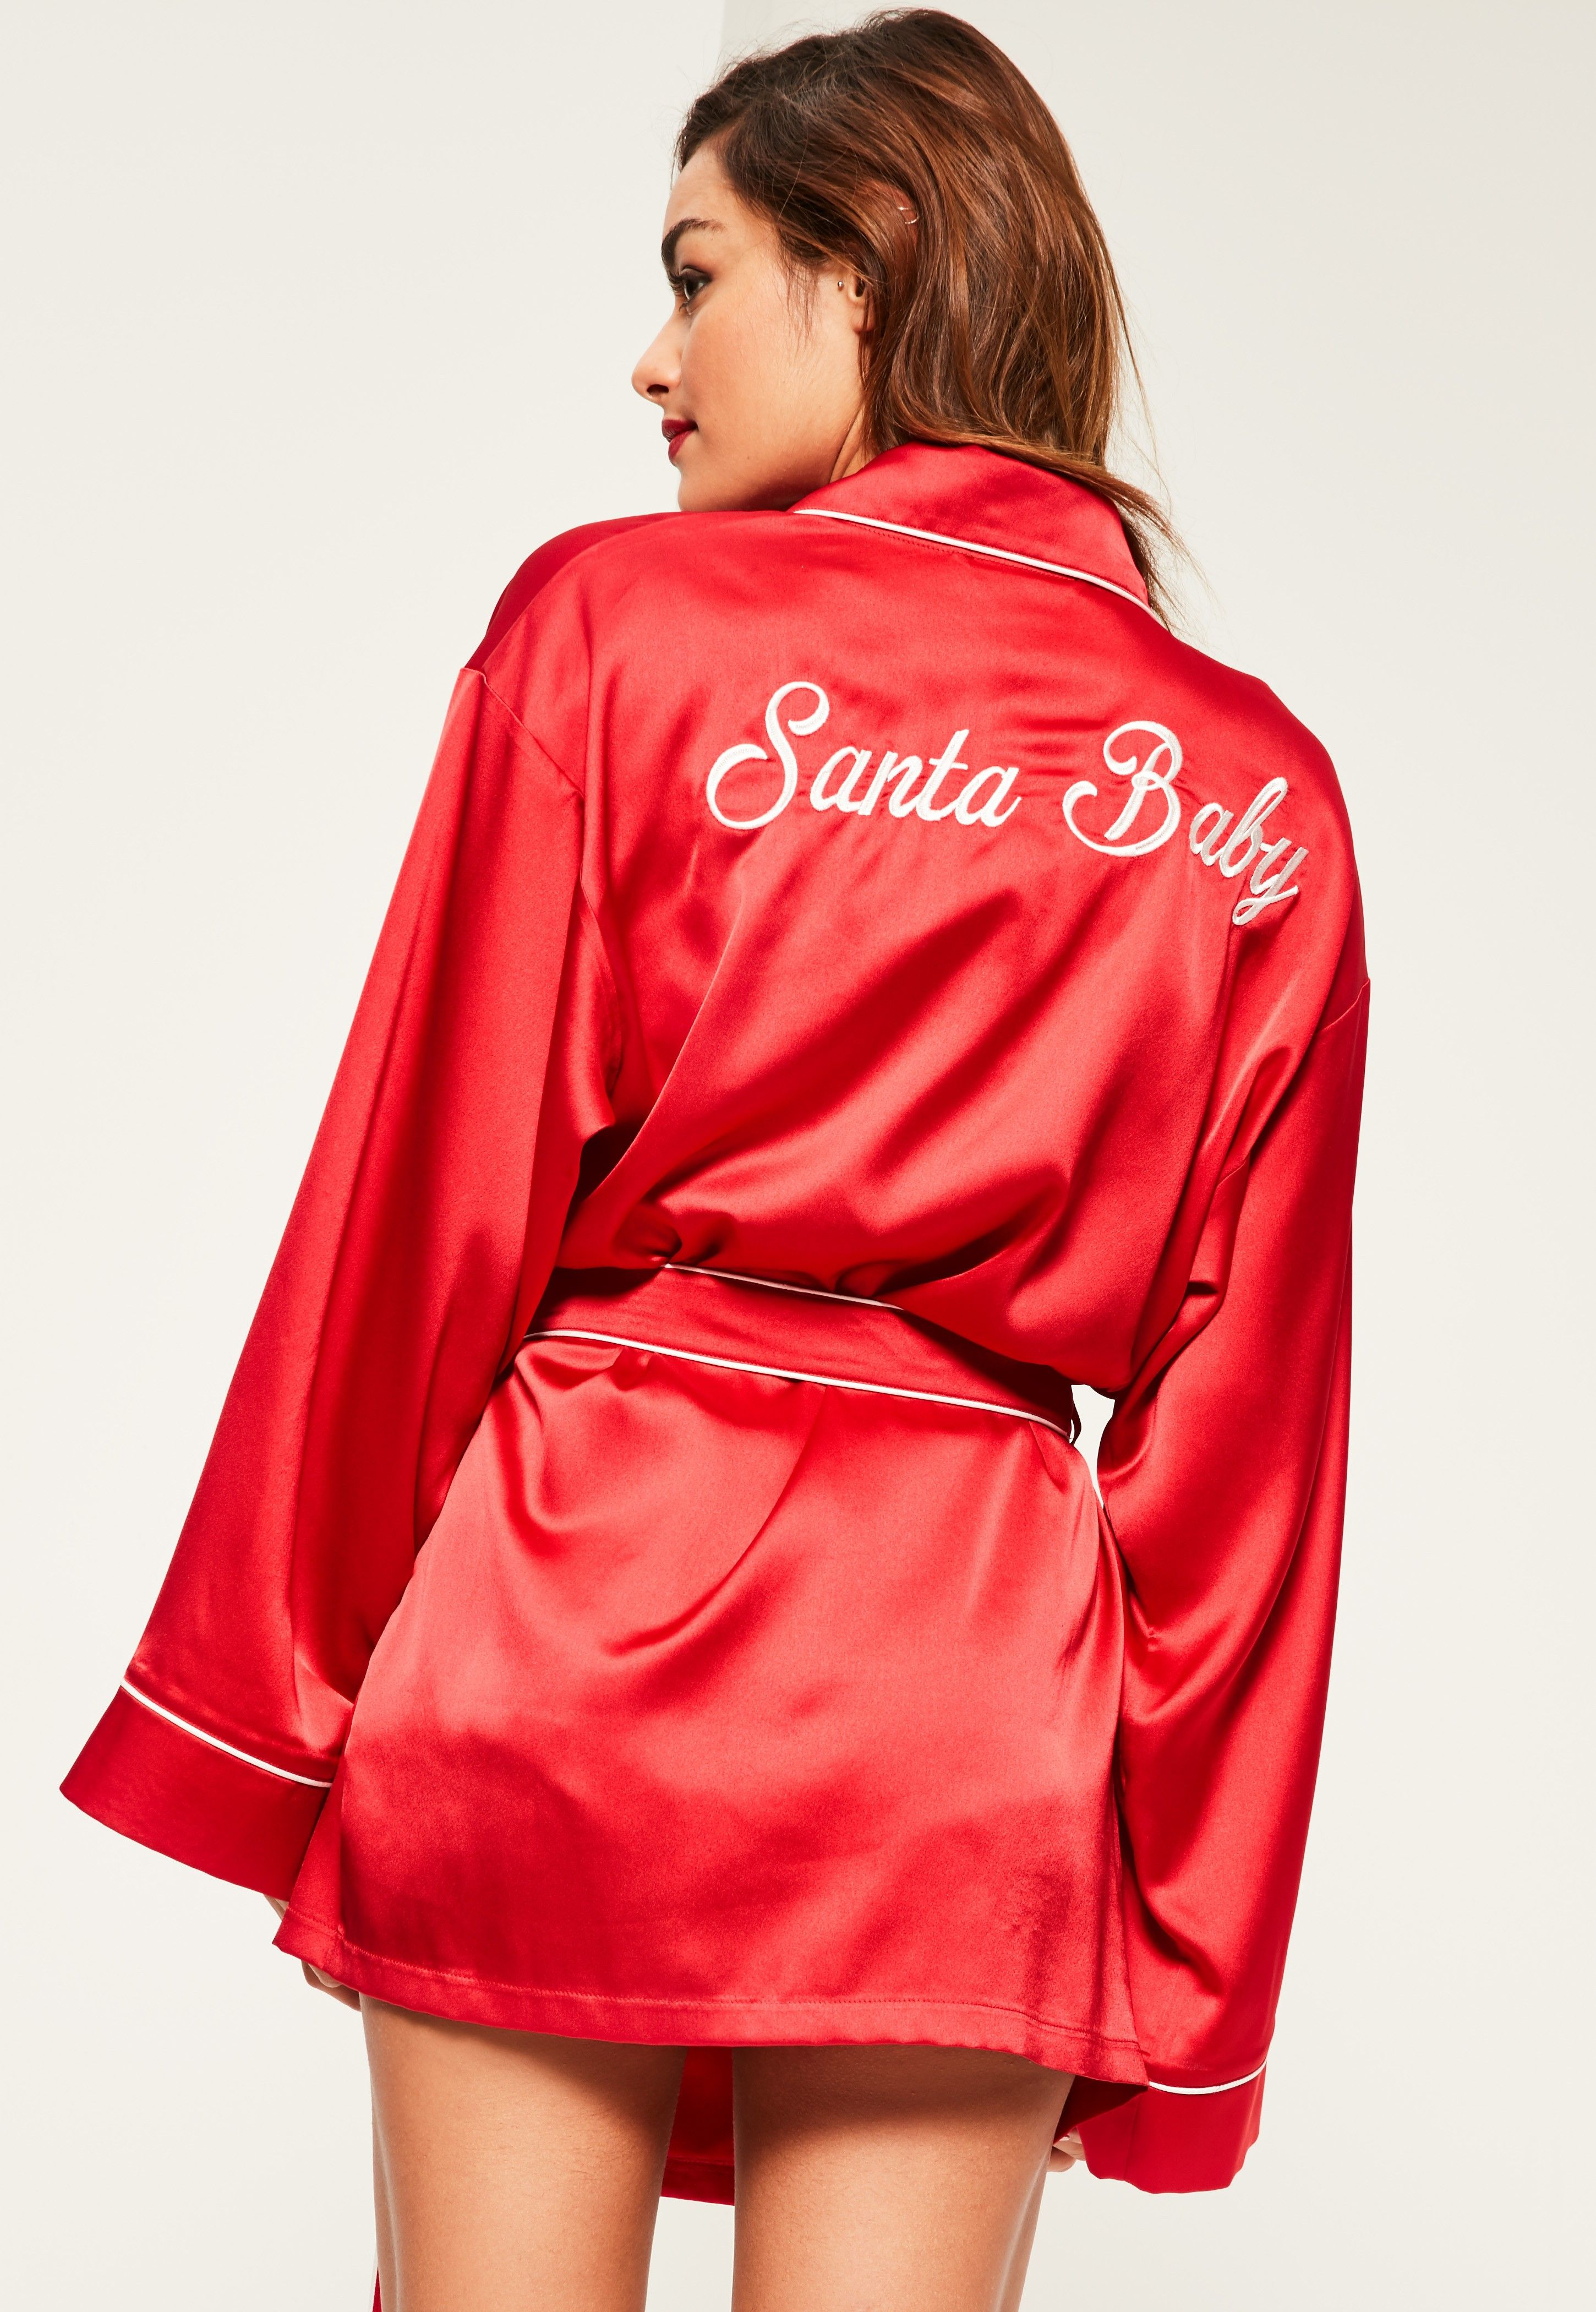 Missguided - Red Santa Baby Kimono Satin Robe  761941adb